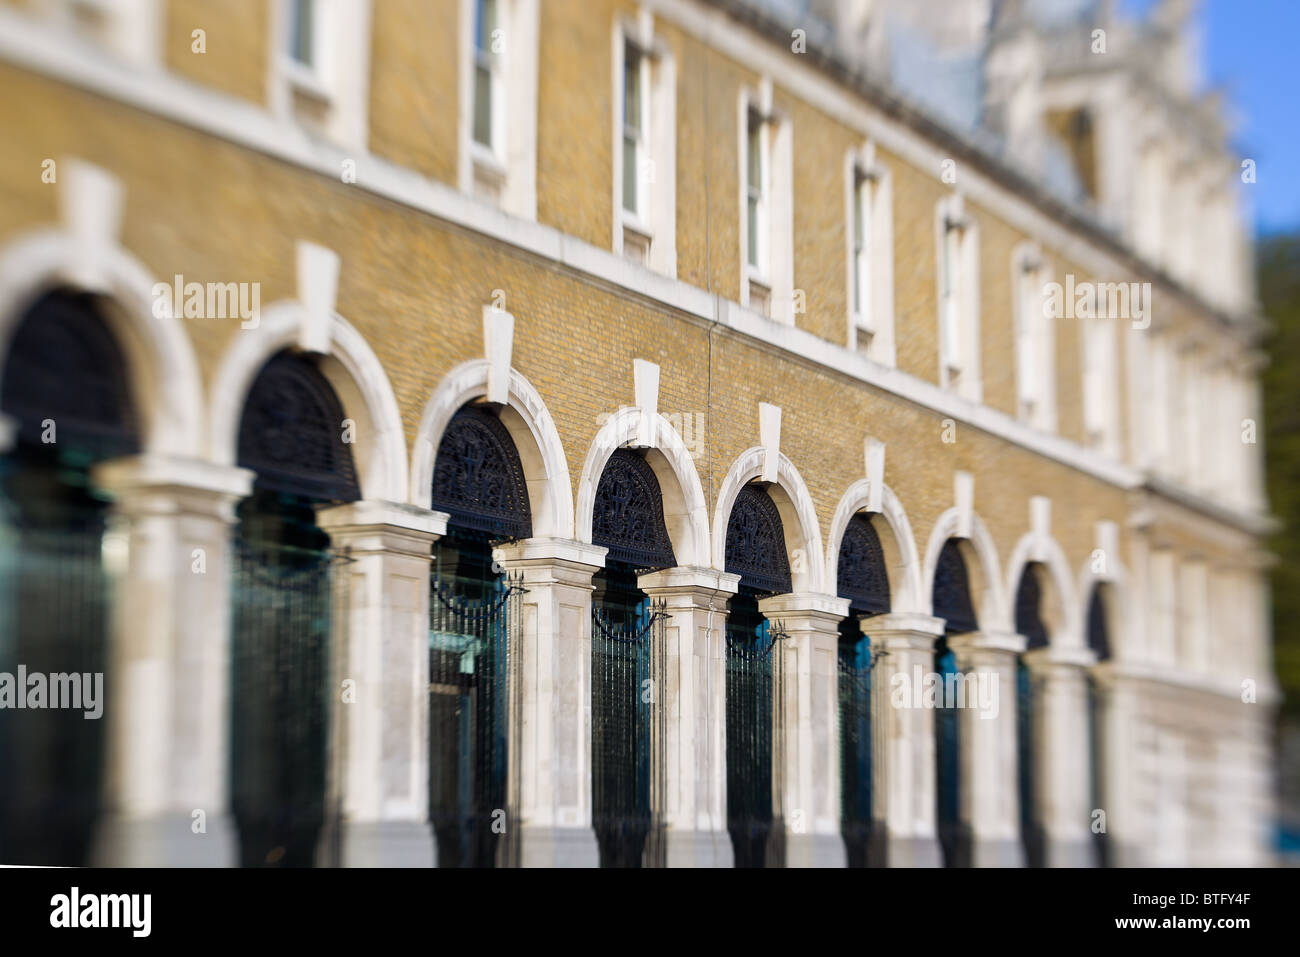 Wrought Iron Gates Against Brickwork Of Old Victoria Building London England - Selective Focus Image - Stock Image